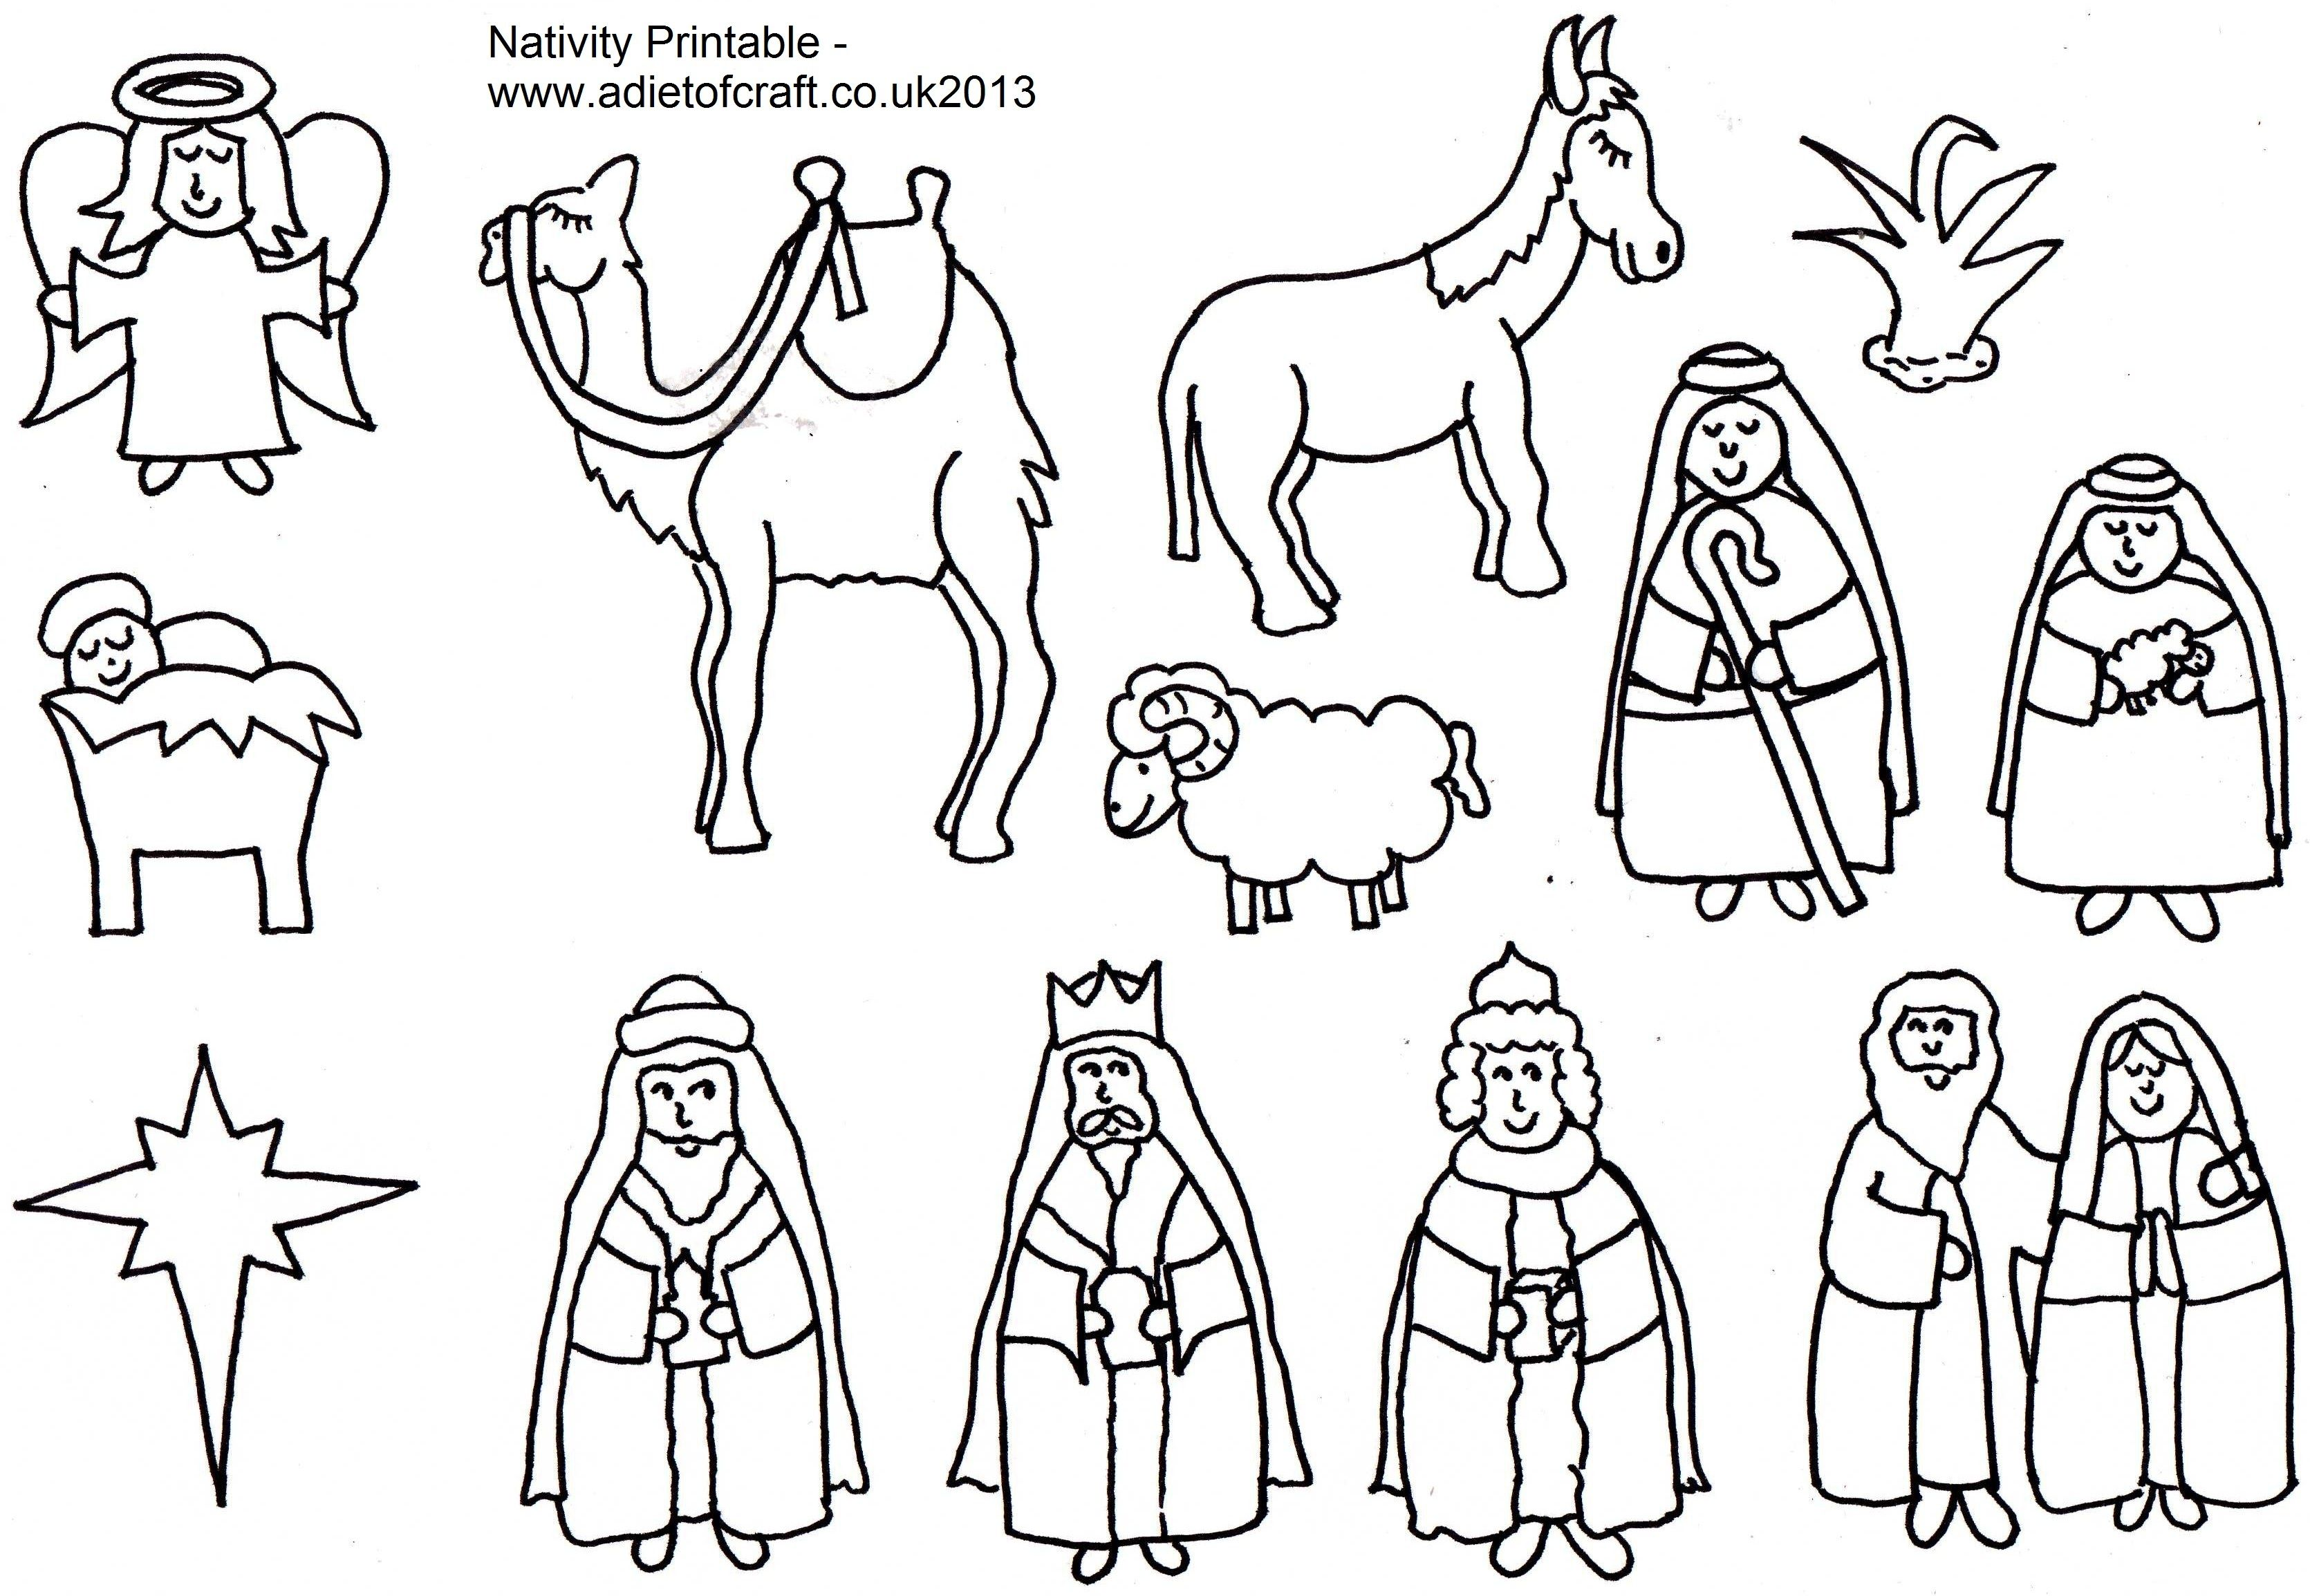 Nativity Scene Coloring Pages Printables Nativity Coloring Pages